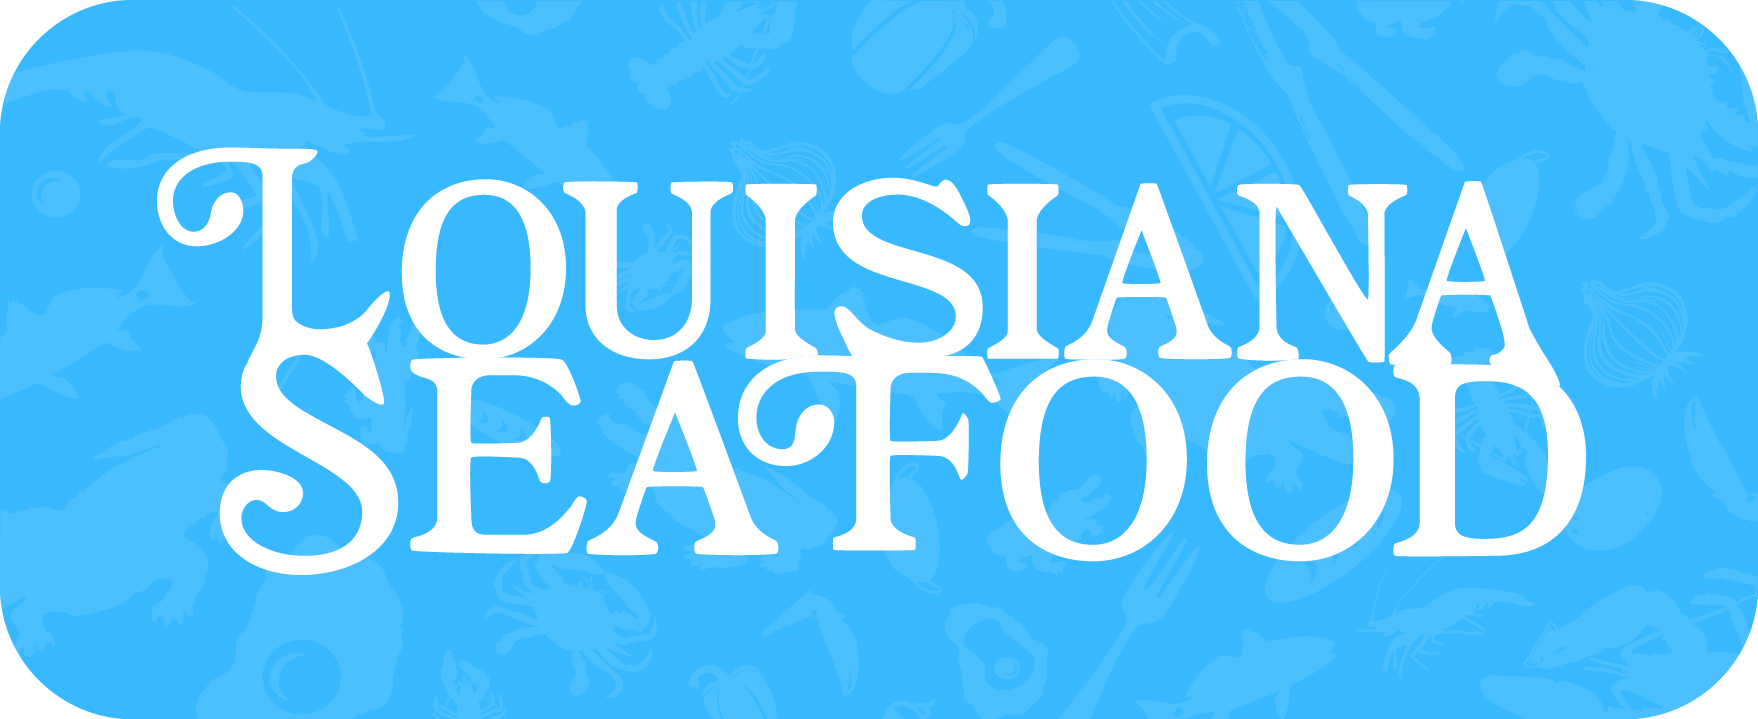 LouisianaSeafood_1C_Blue_no_tagline.jpg